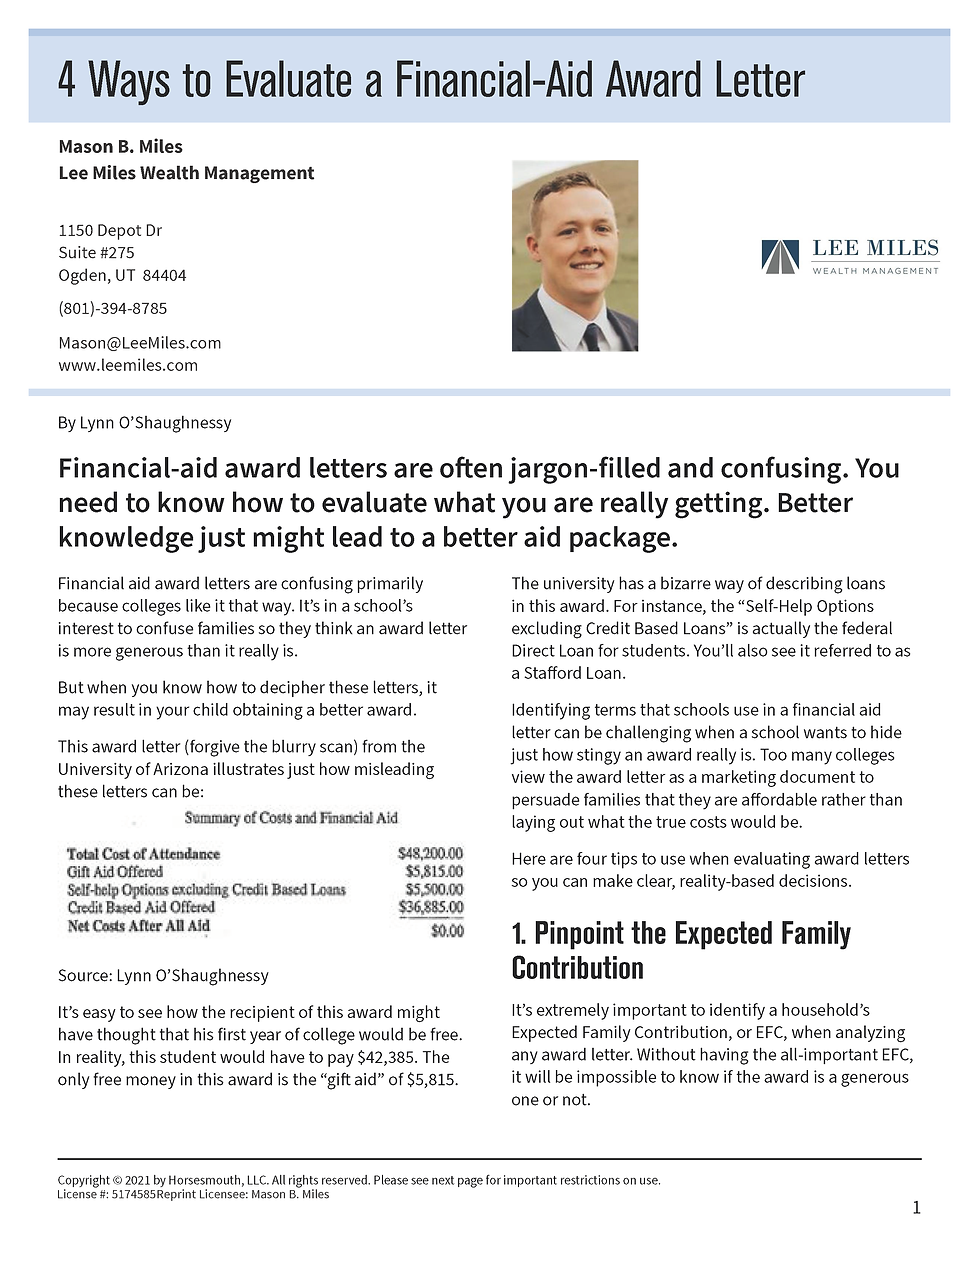 4 Ways to Evaluate a Financial-Aid Lette